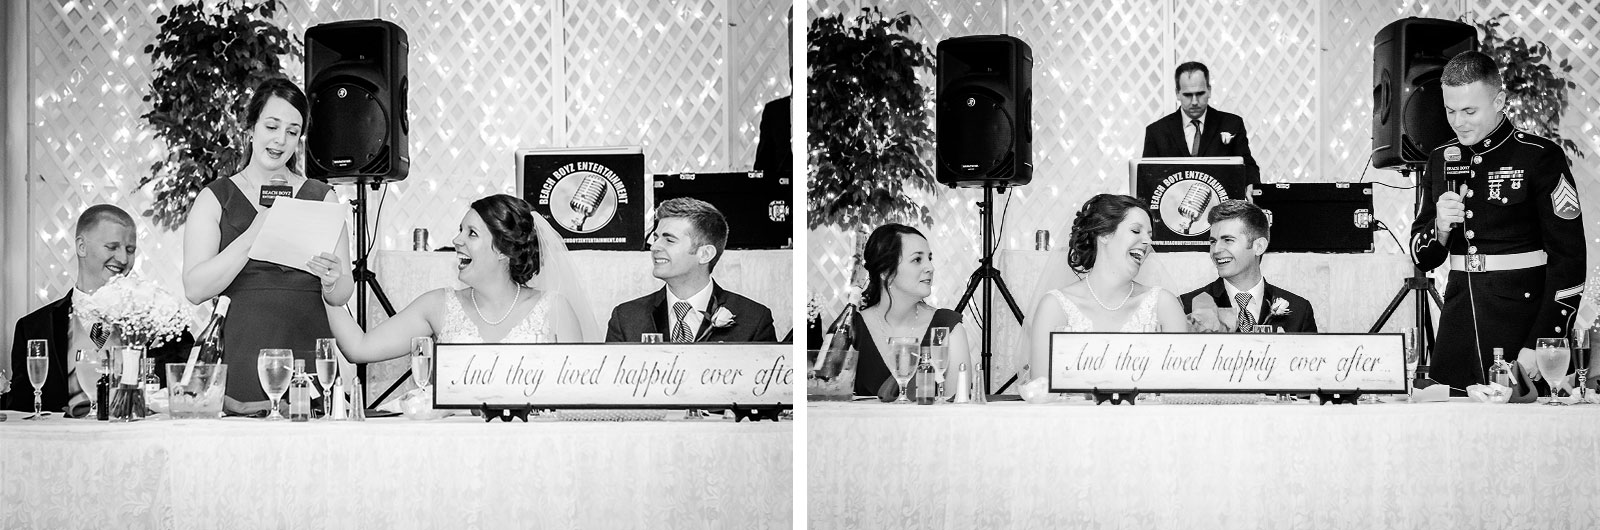 Eric_and_Christy_Photography_Blog_Wedding_Kelly_Michael-48-49